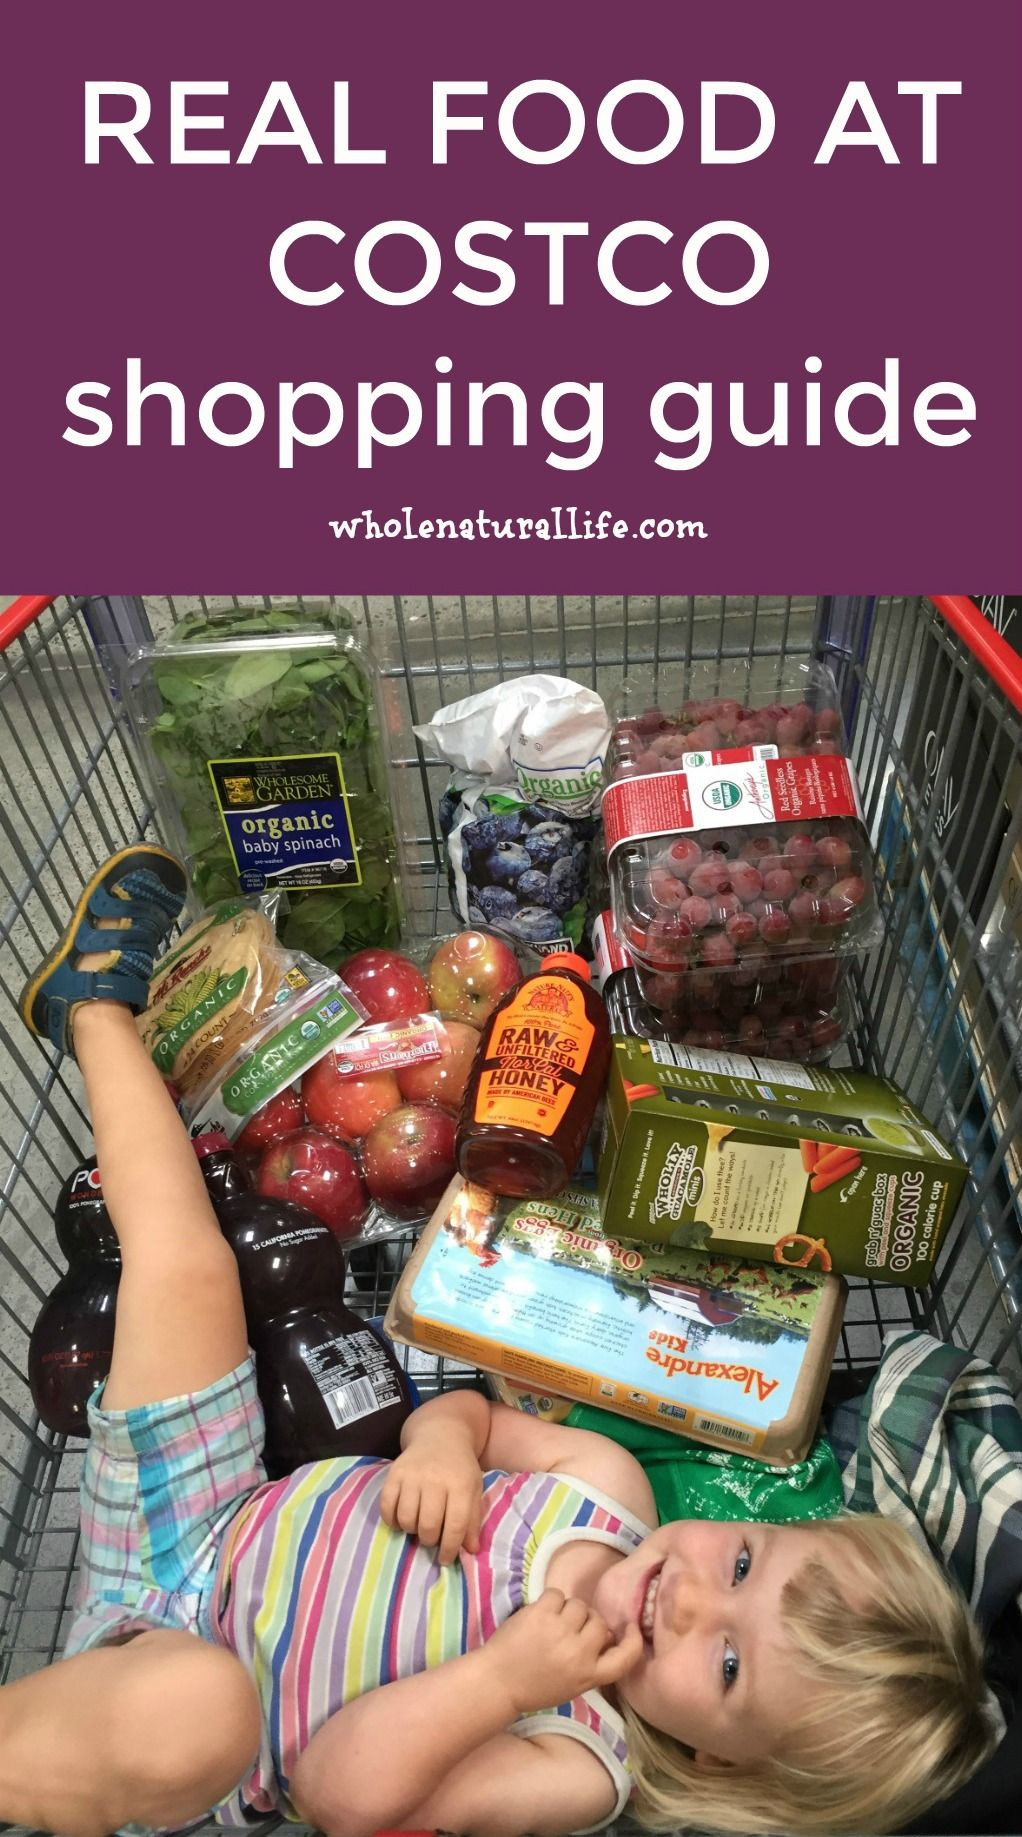 Real food at costco a shopping guide paleo pinterest costco food shopping list food prep costco now carries a ton of organic and natural products check out this shopping guide forumfinder Images